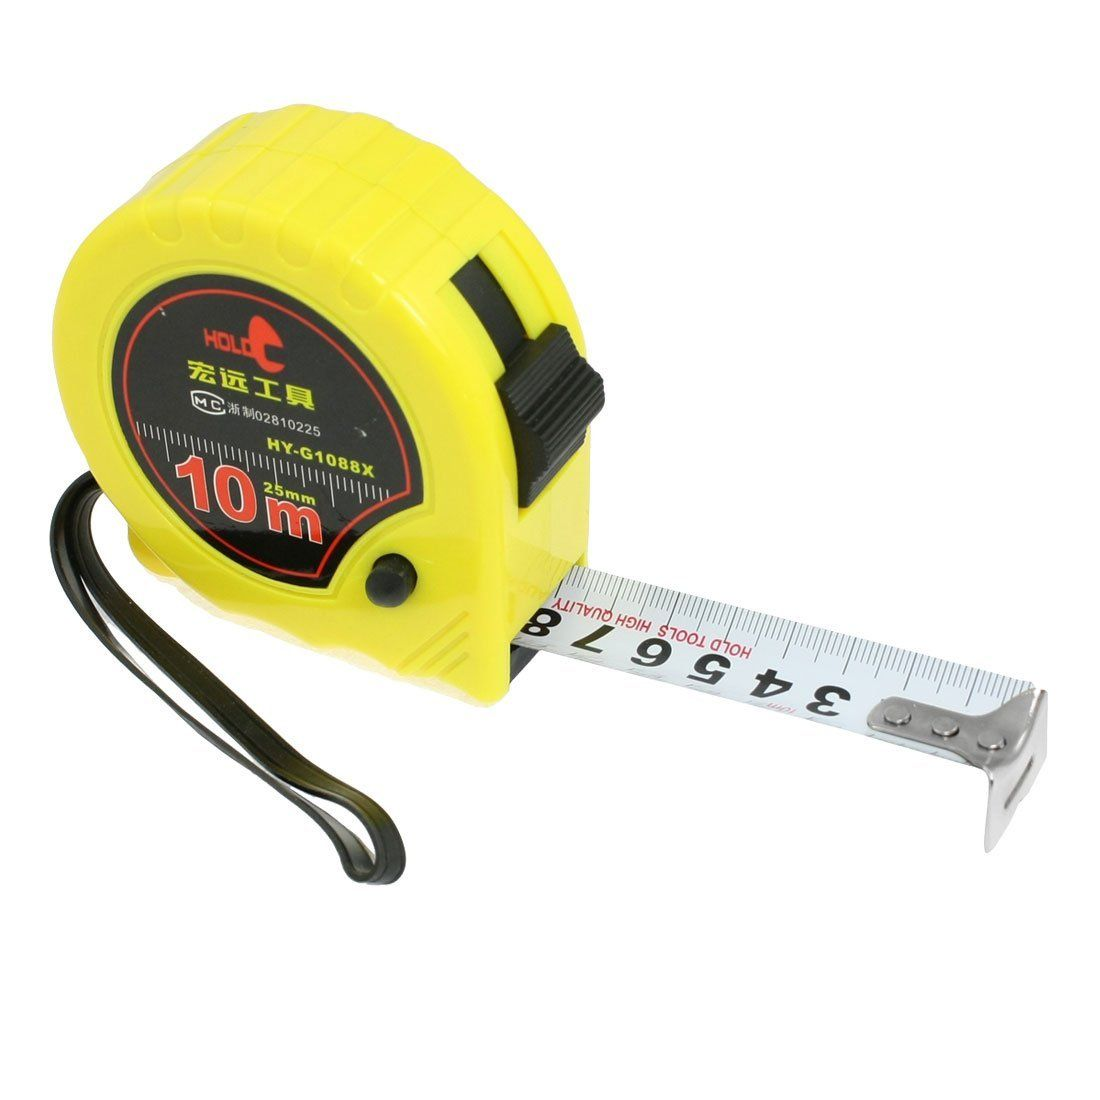 1pcs Stainless Steel Tape Measure 10m Tape Measure Metric